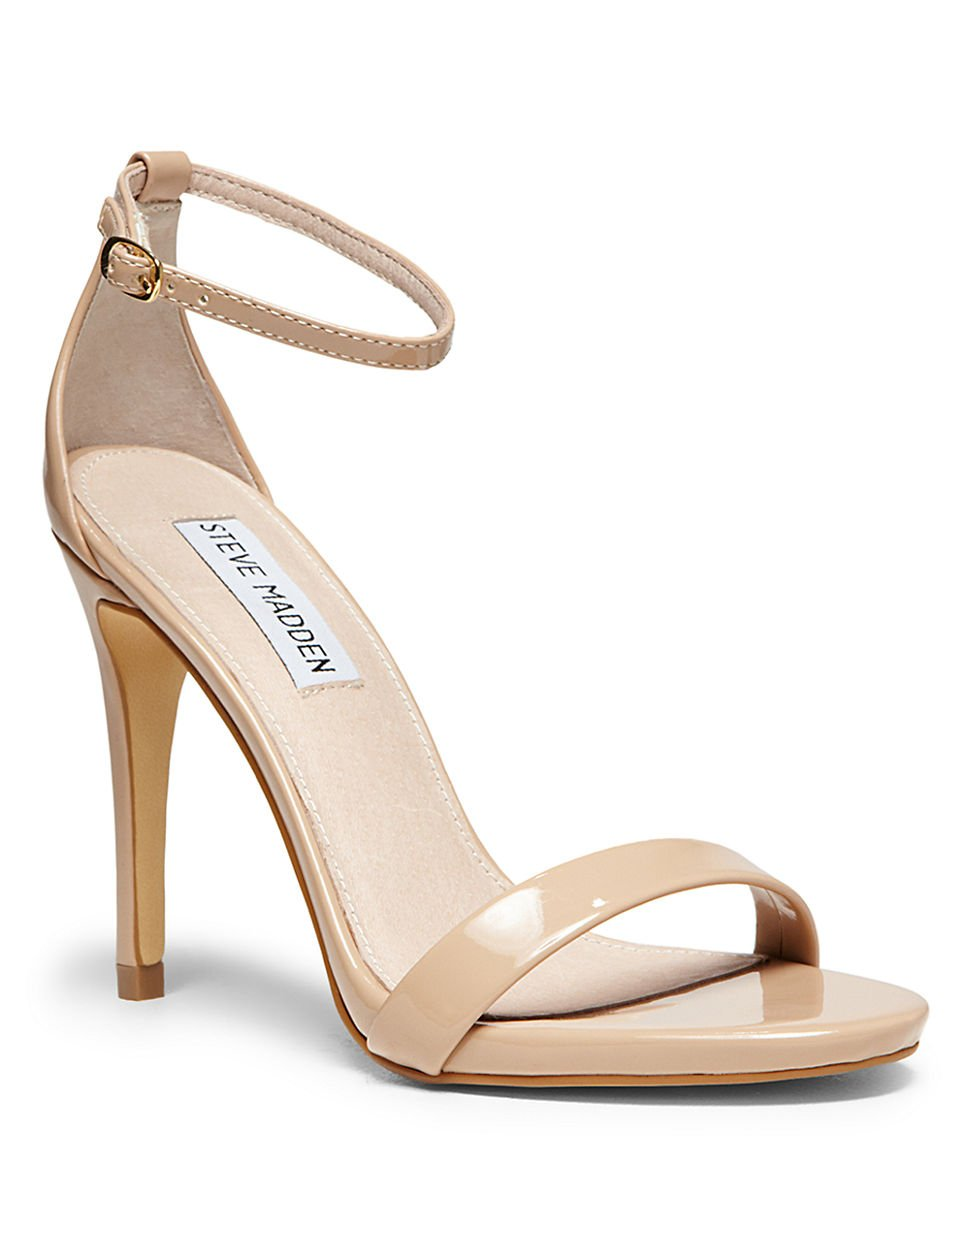 Steve Madden Stecy Strappy Sandals In Pink  Lyst-3614